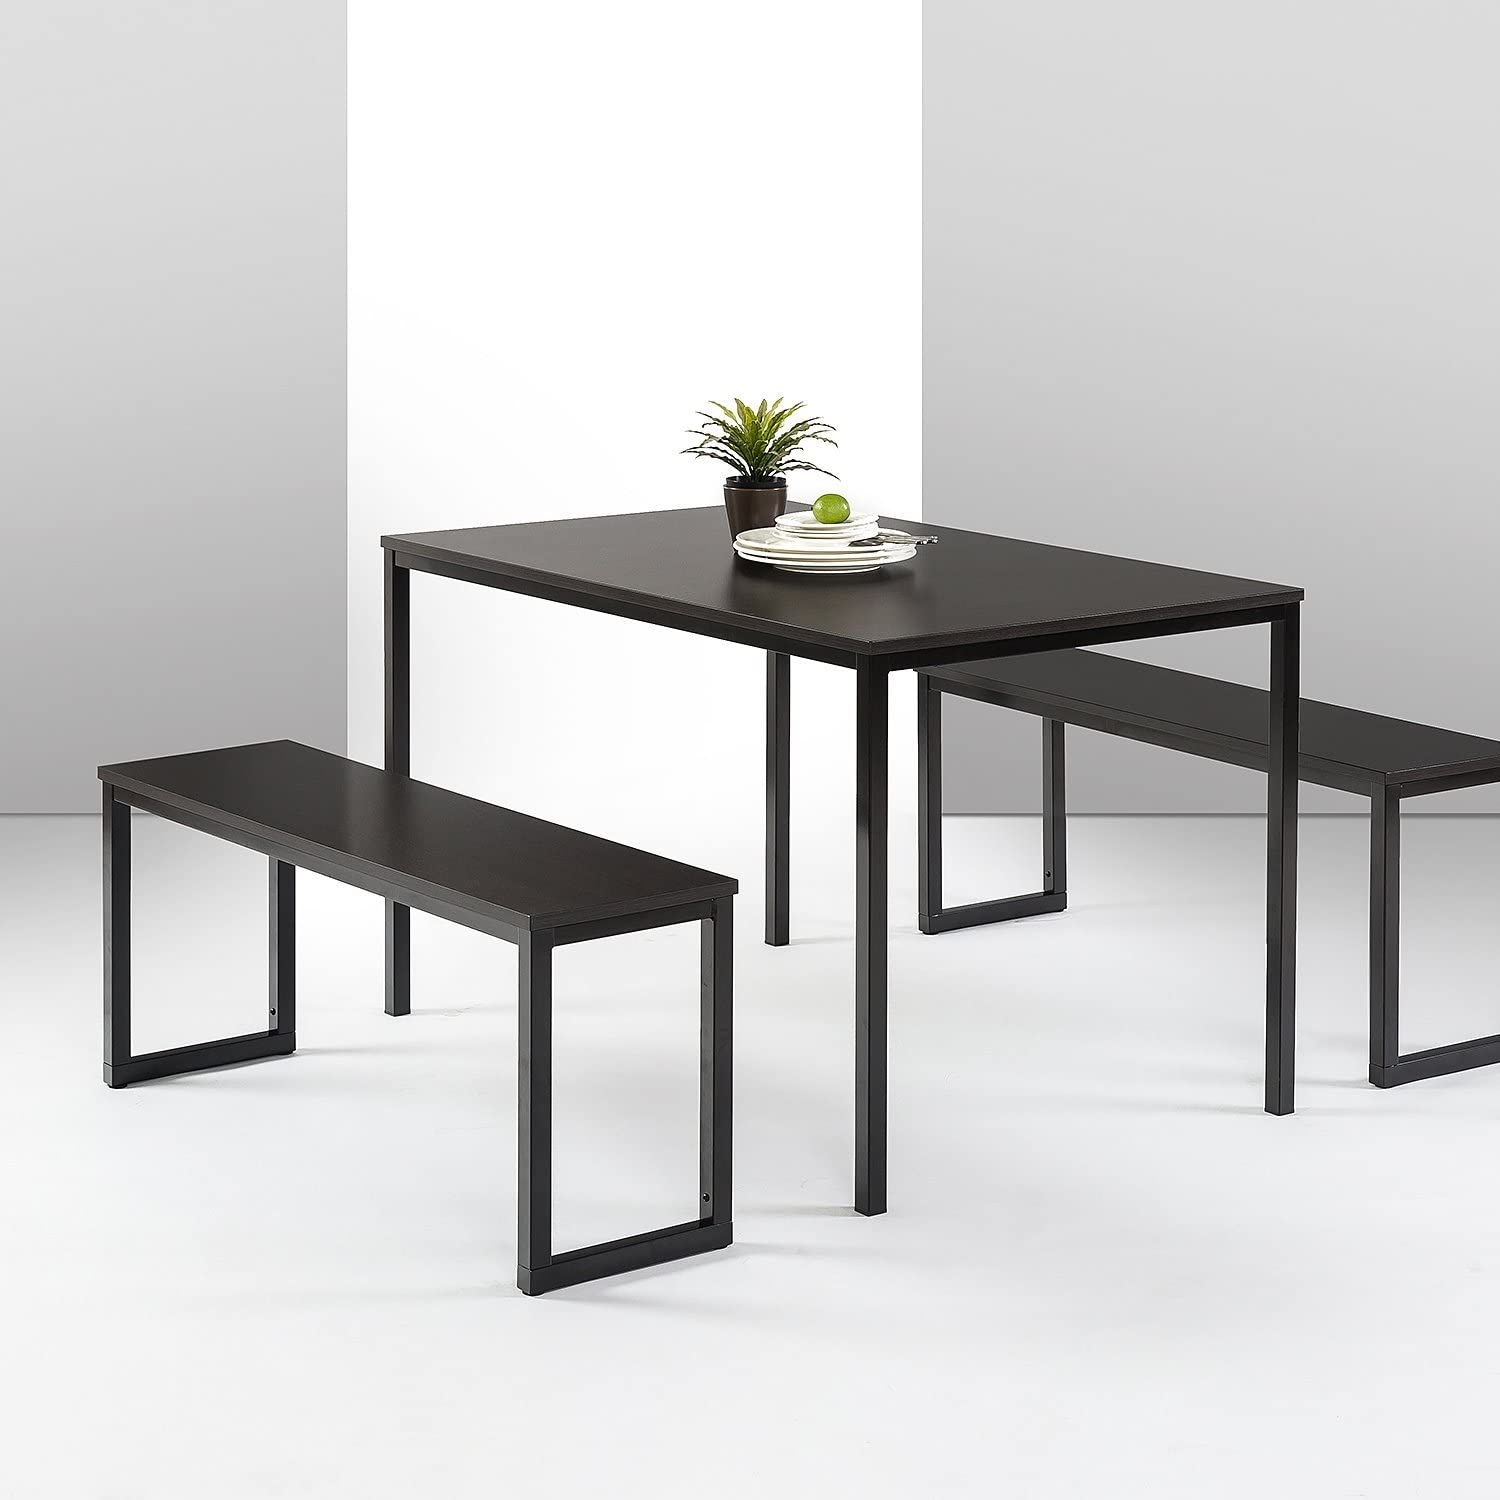 Zinus Modern Studio Collection Soho Dining Table with Two Benches / 3 Piece Set Espresso  sc 1 st  Amazon.com & Table Benches | Amazon.com